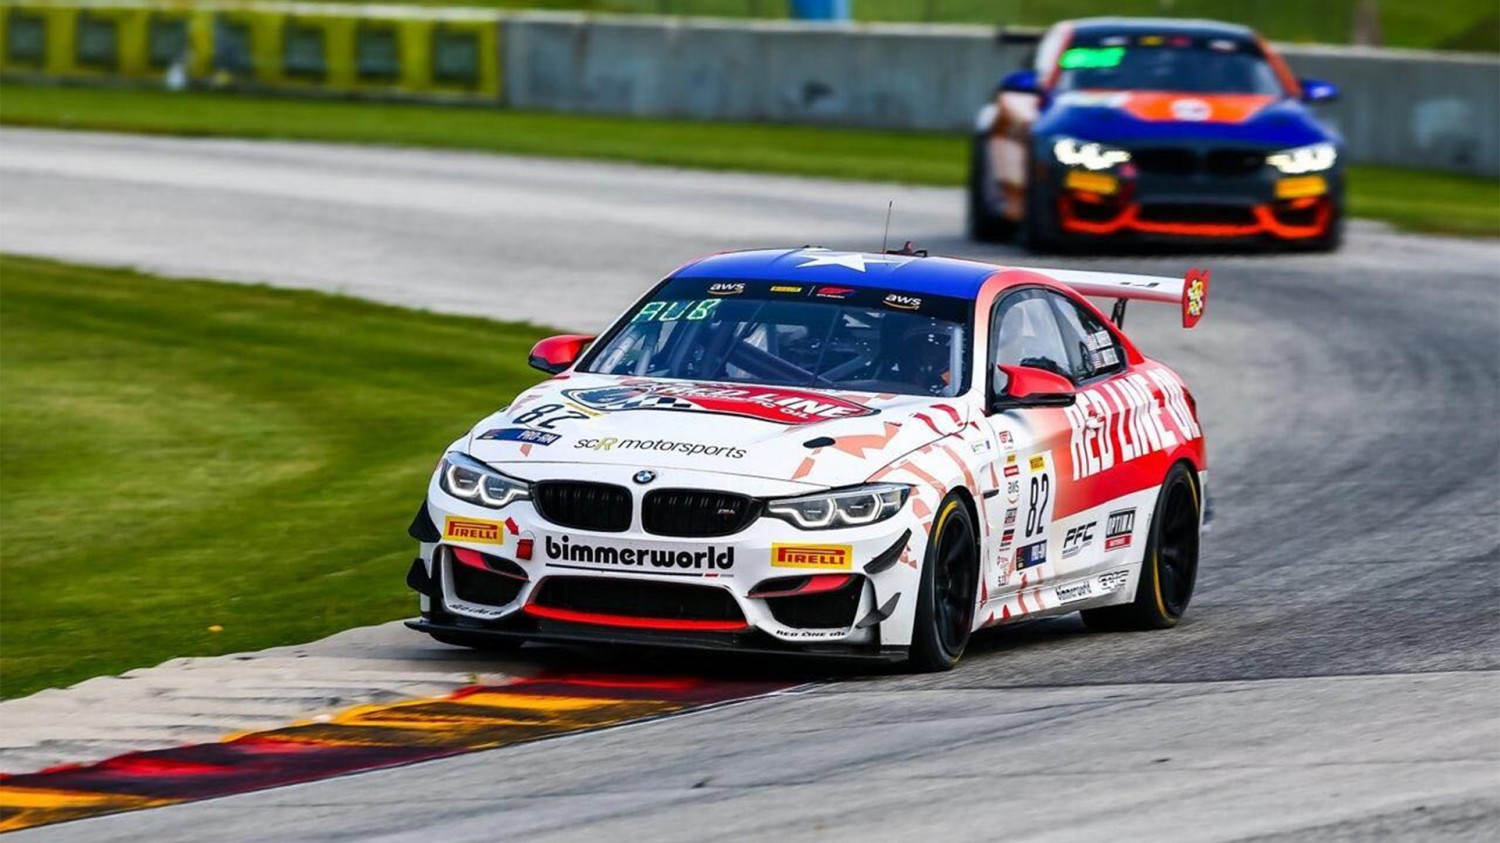 Auberlen/Walker Jr Win Exciting Pirelli GT4 America Race 1 at Road America